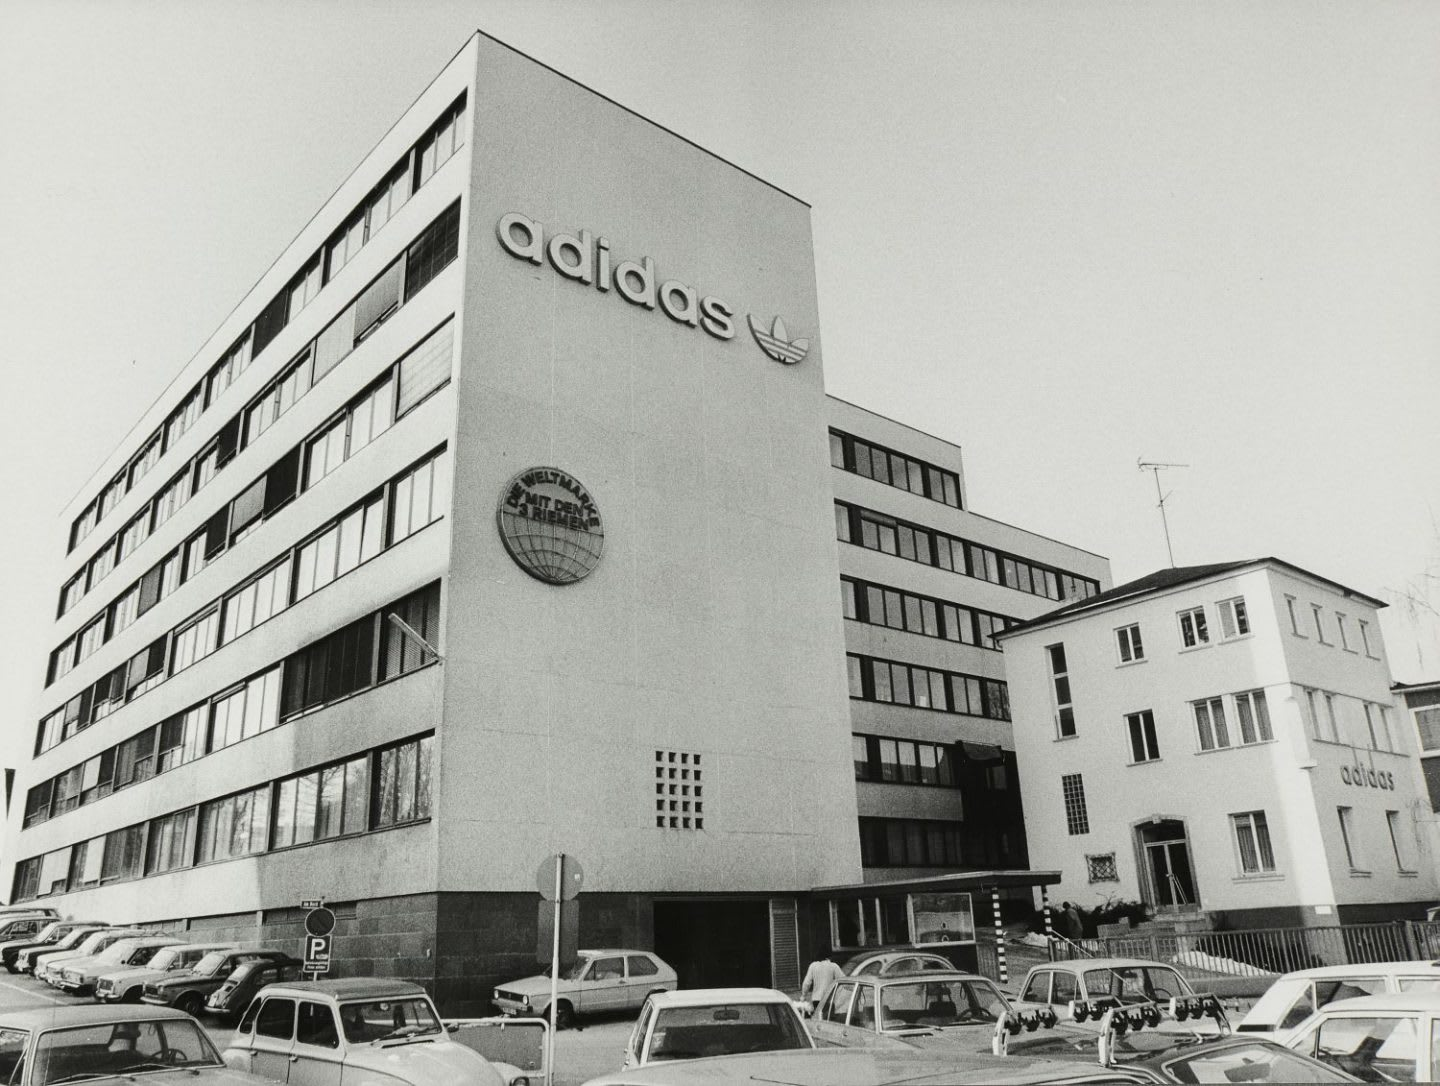 Old fashioned picture of building with adidas logo, Herzogenaurach, 1977, Adolf, Dassler, Adi, adidas, sports, shoes, shoemaker, history, archive